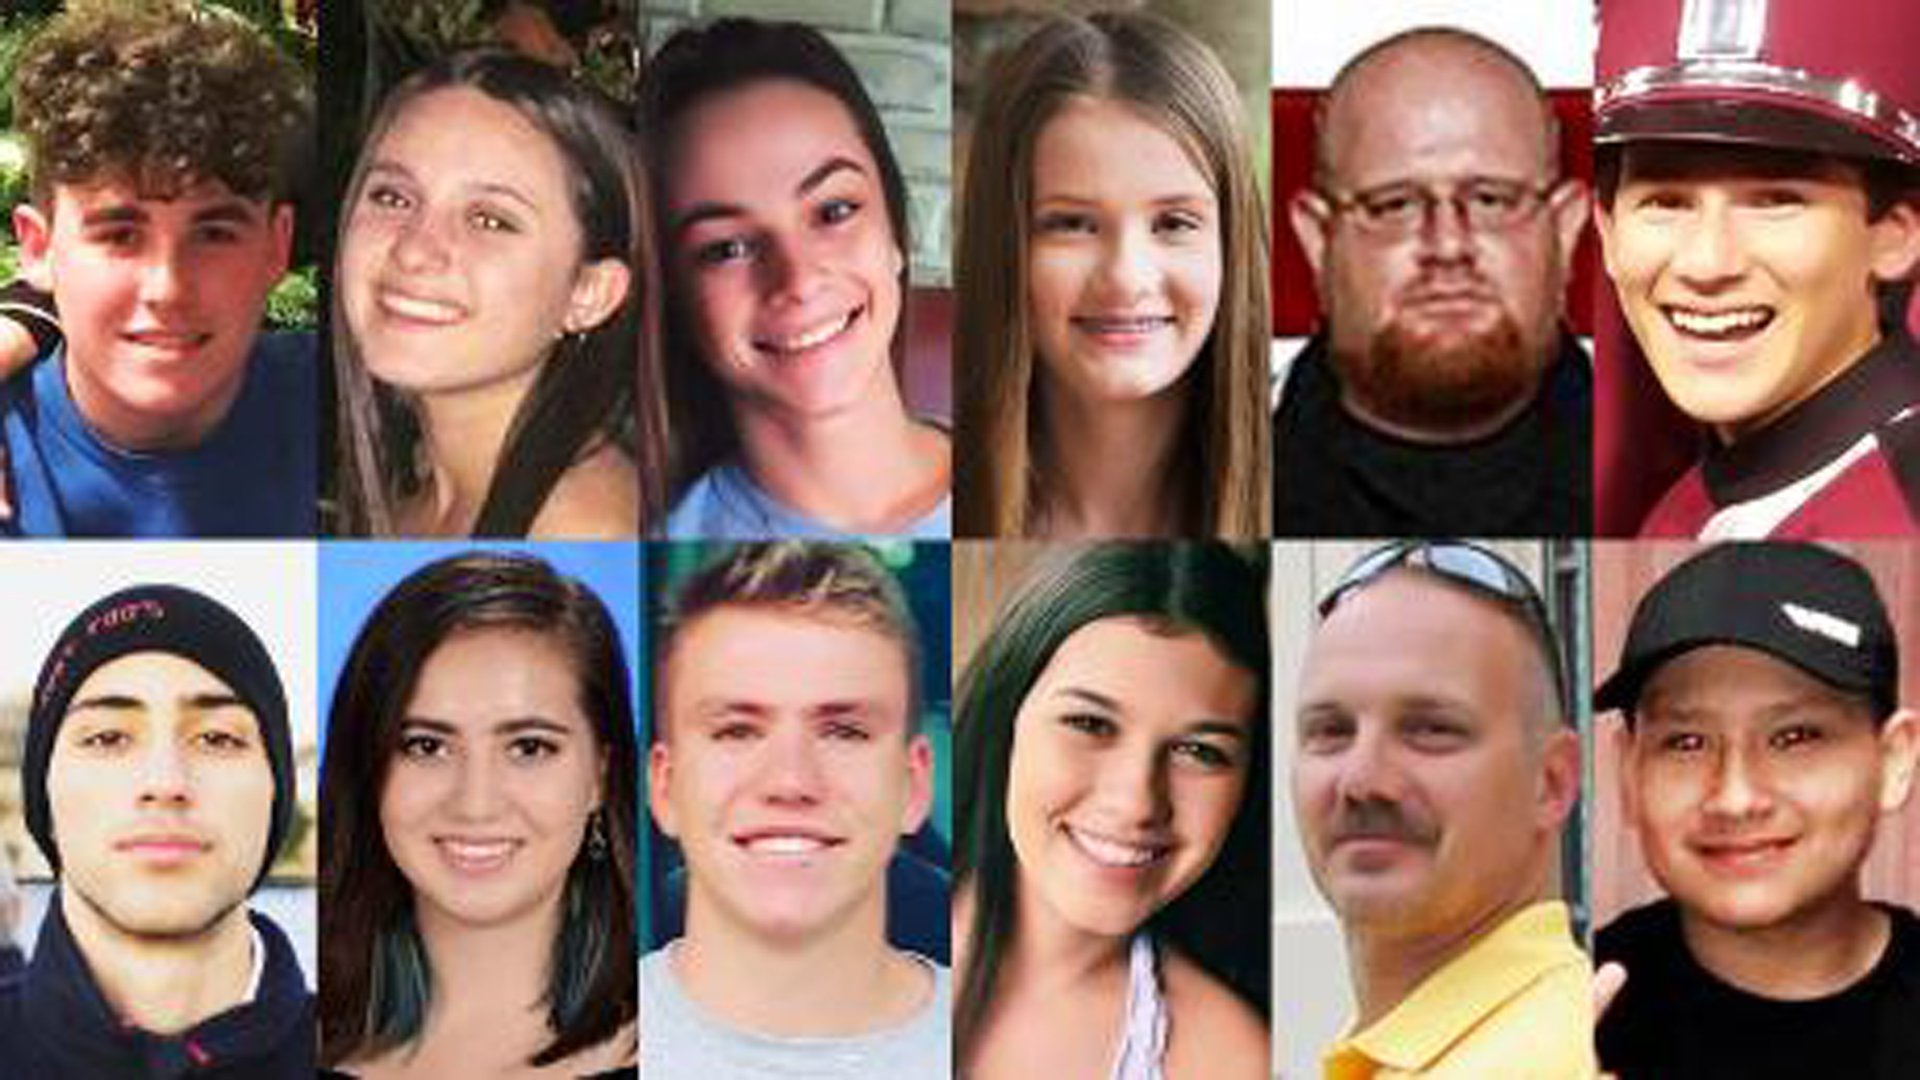 Marjory Stoneman Douglas High School shooting victims are seen in photos obtained by CNN.